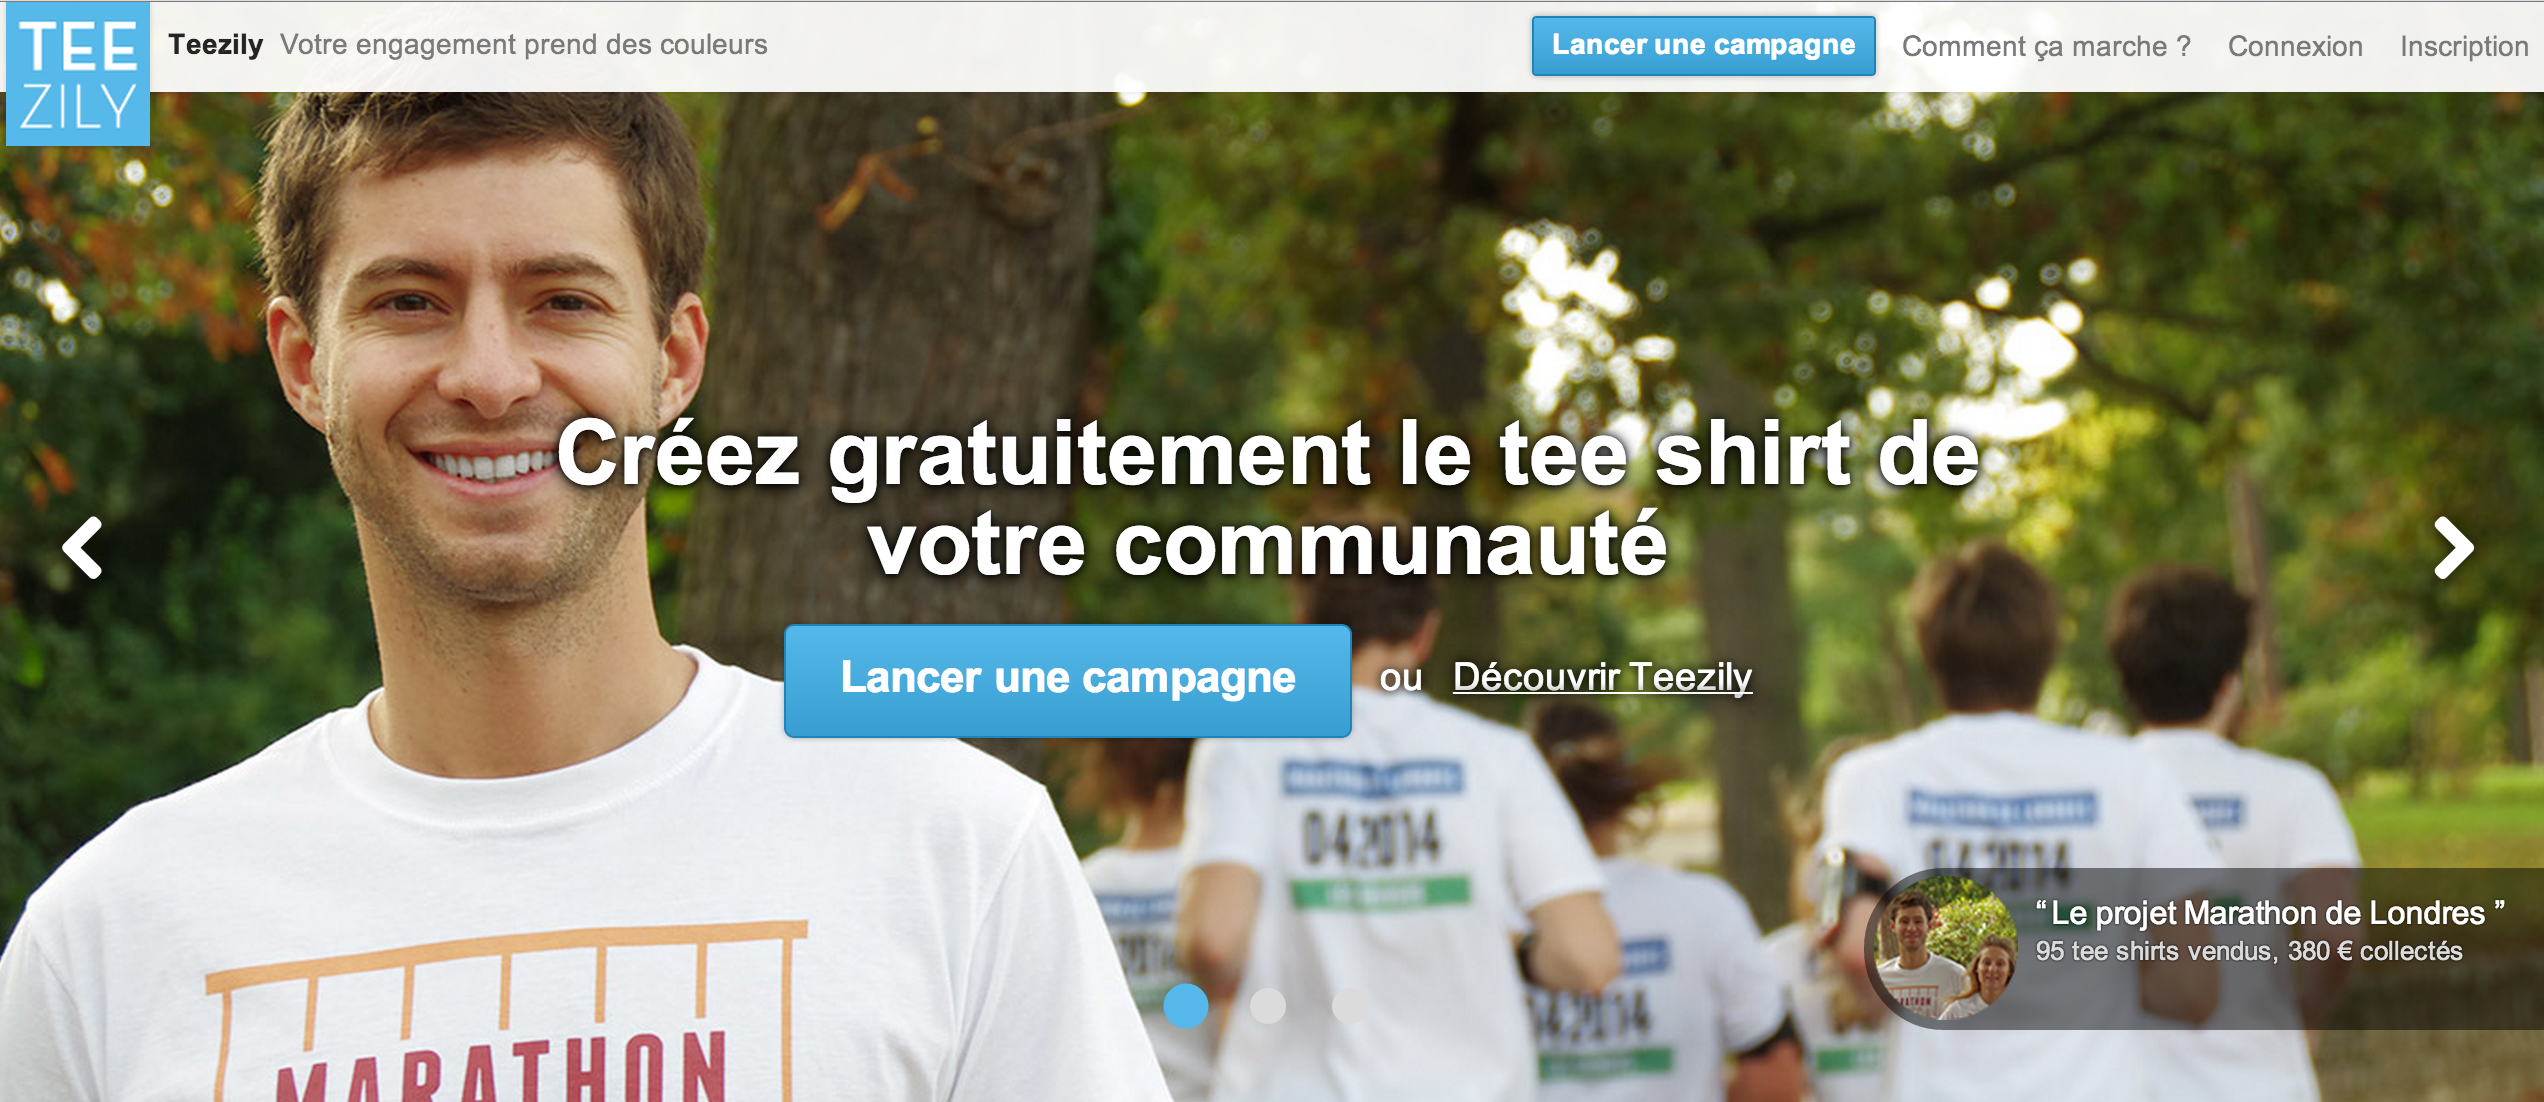 Page d'accueil Teezily Crowdfunding